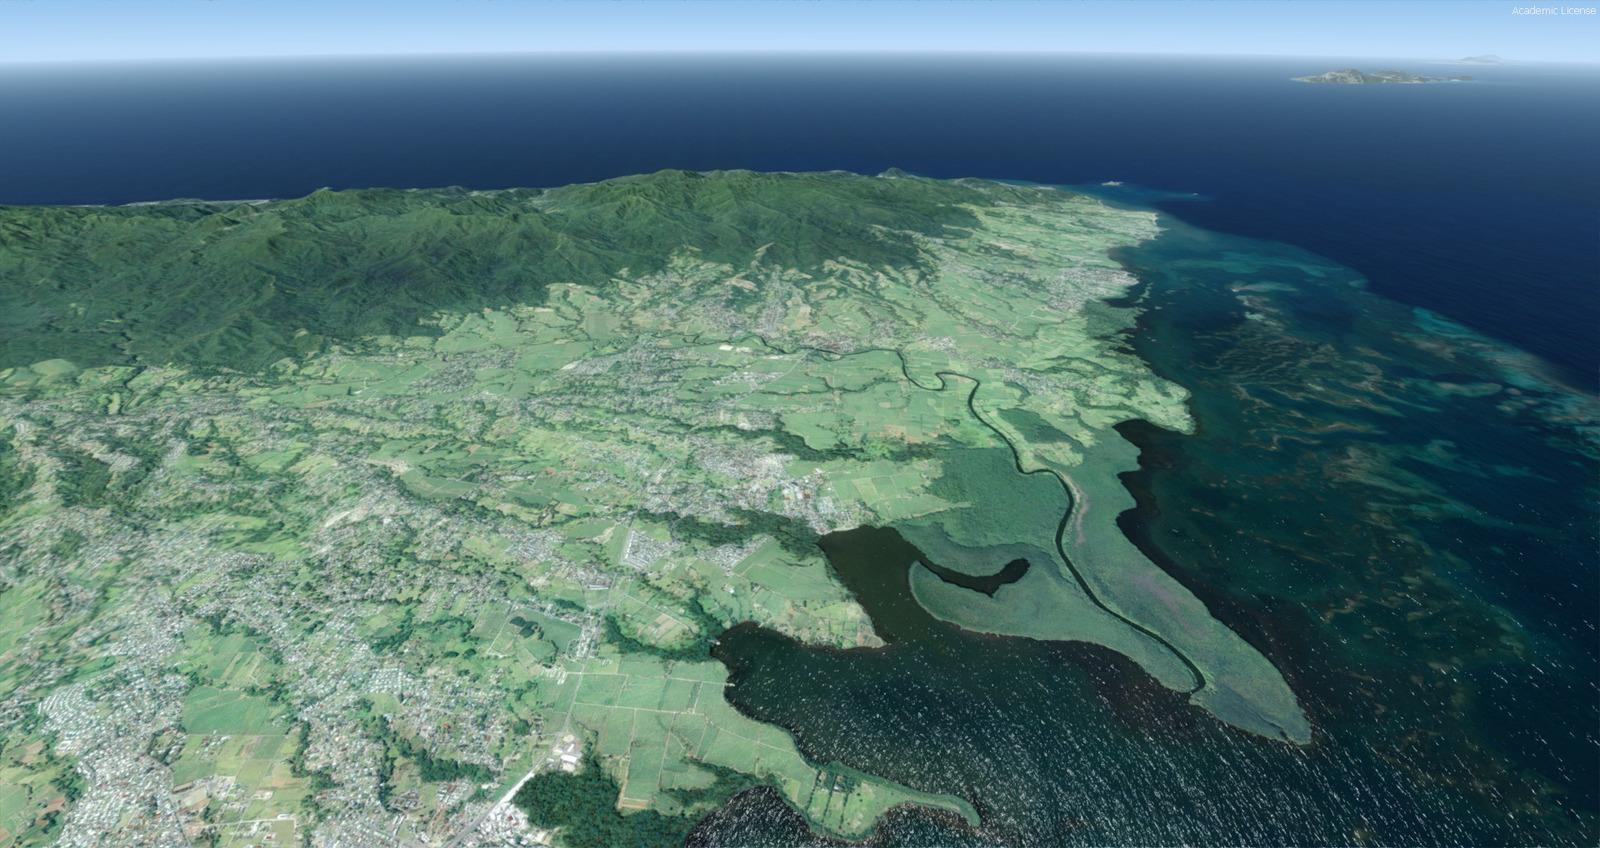 DOWNLOAD The Guadeloupe Free for P3Dv4 - Rikoooo